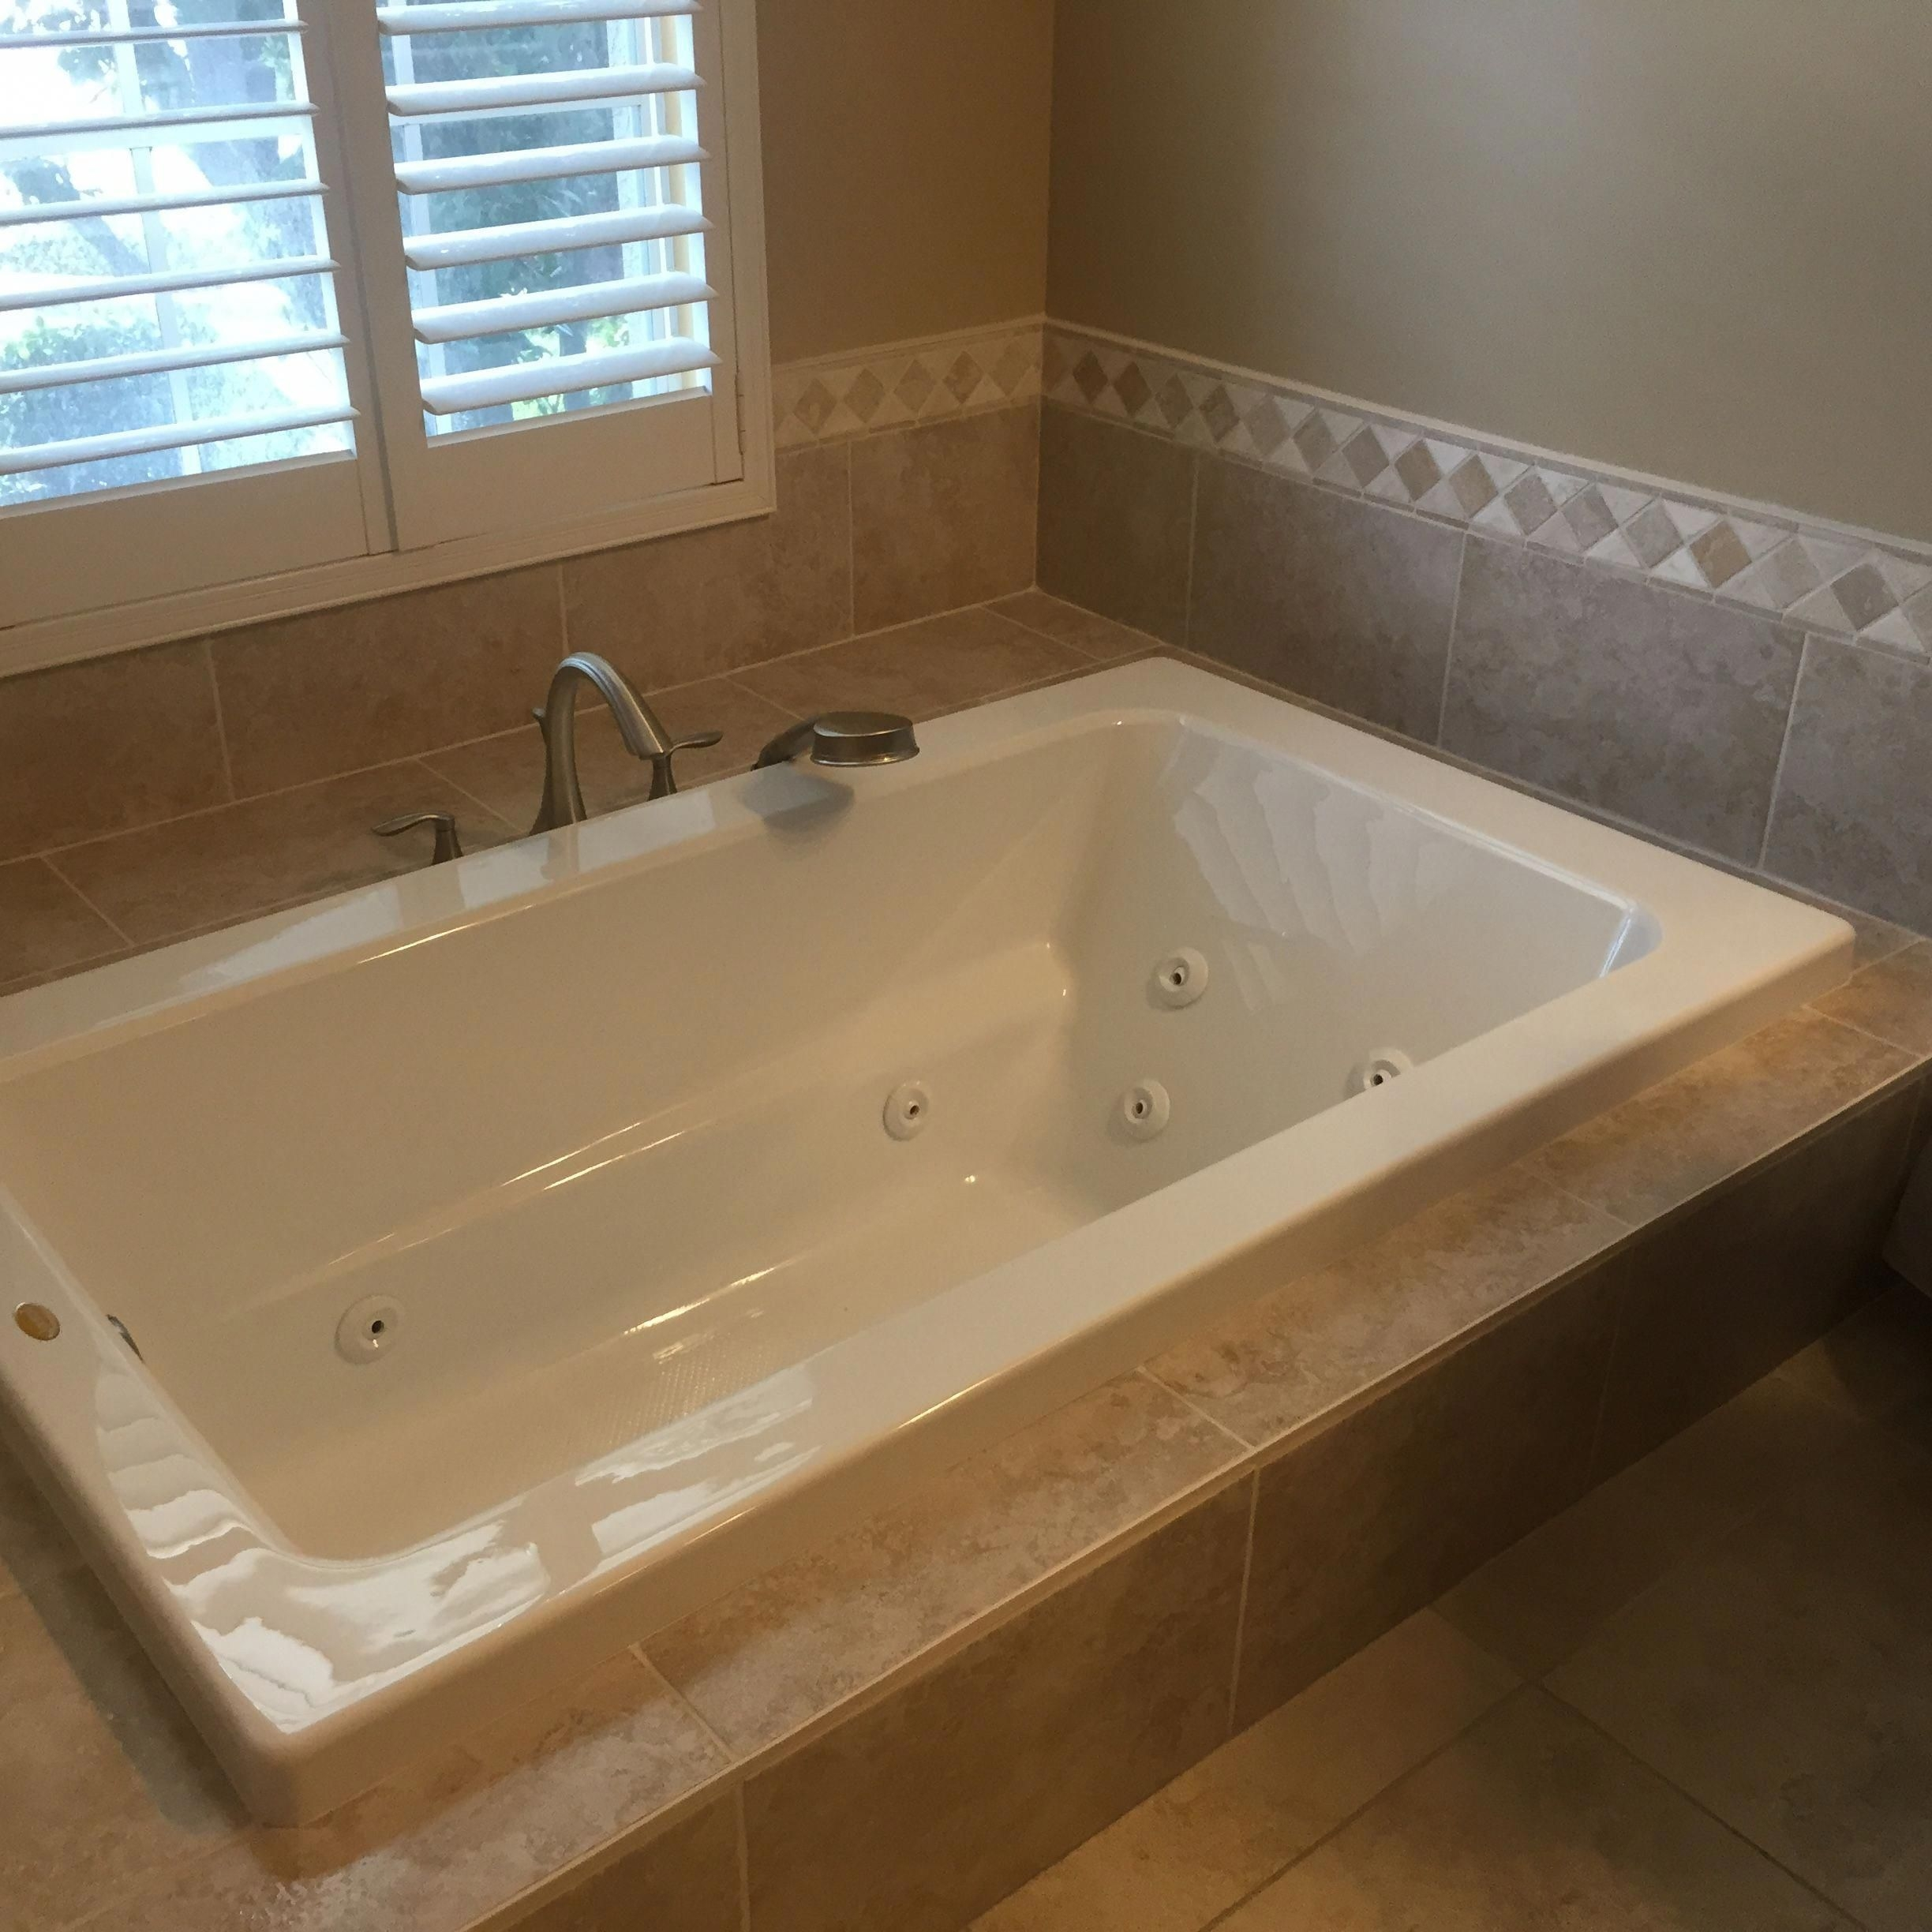 youtube bathroom remodeling  Tub remodel Jetted bath